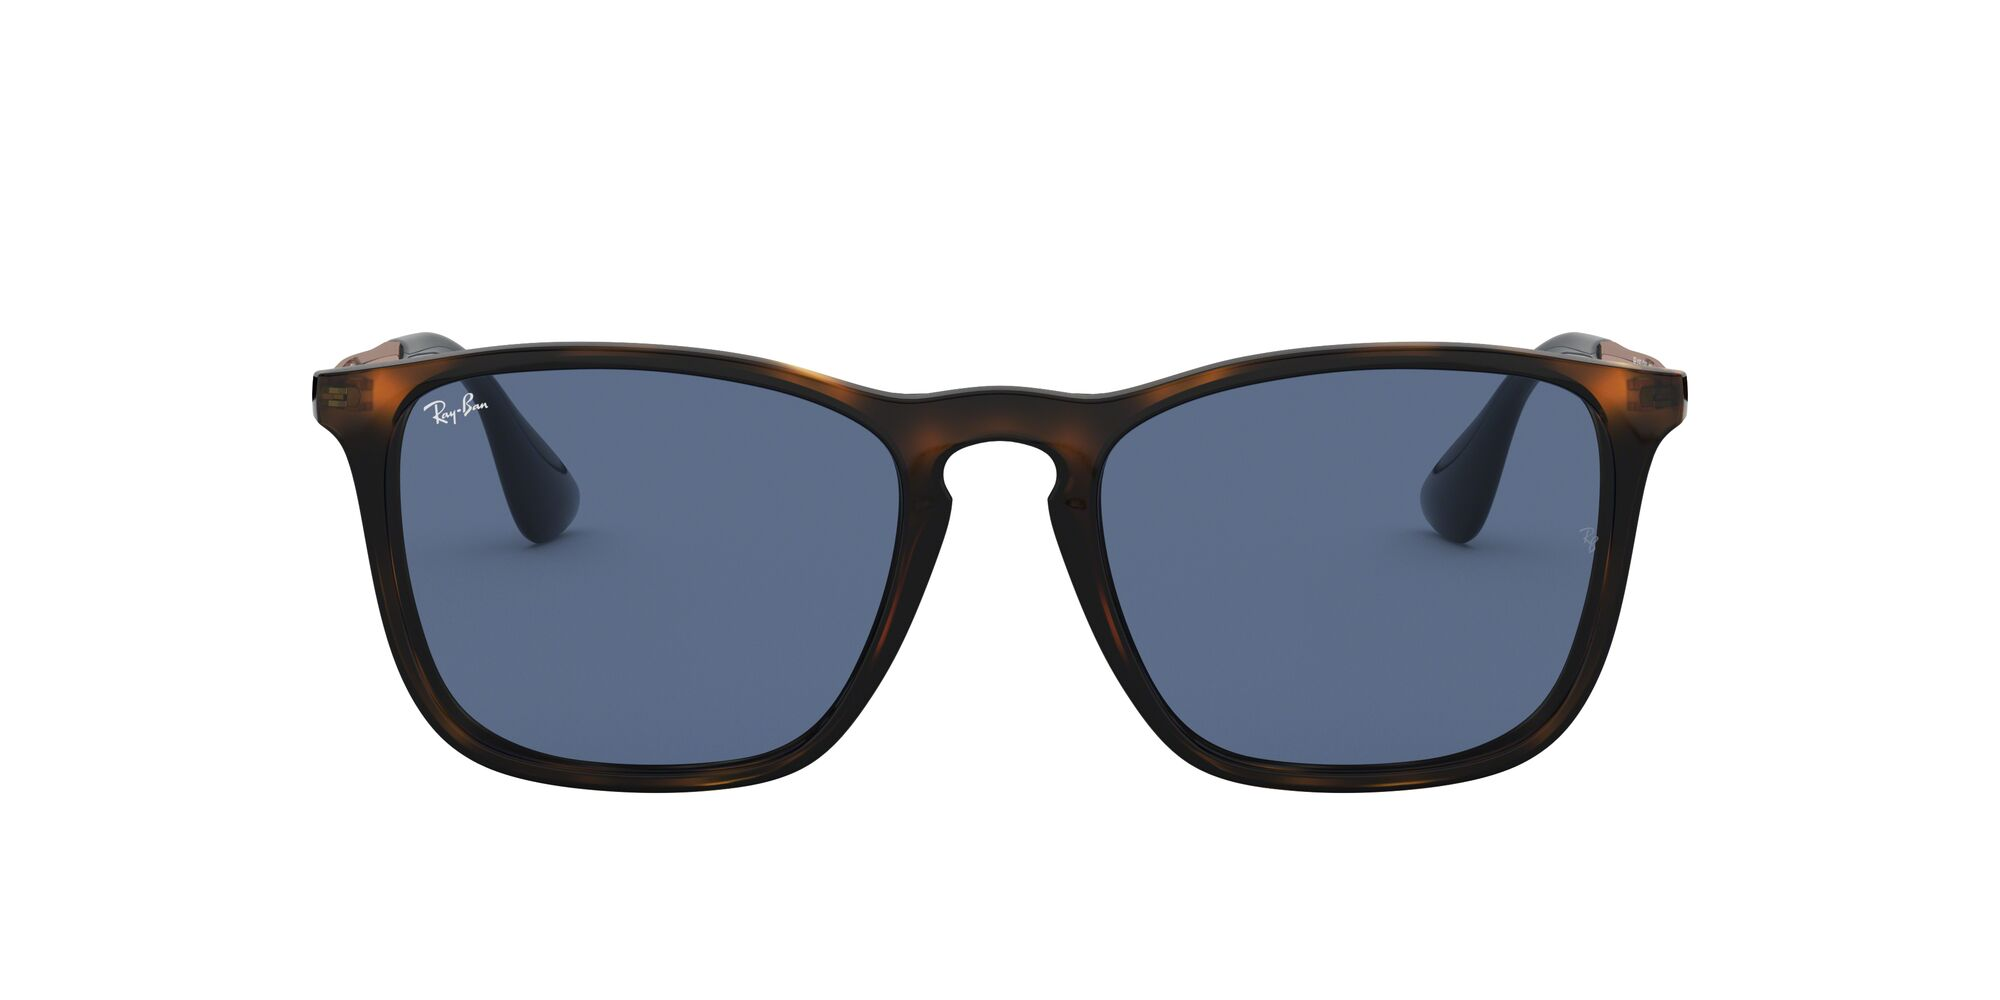 Front Ray-Ban Ray-Ban 0RB4187 639080 54/18 Bruin/Blauw